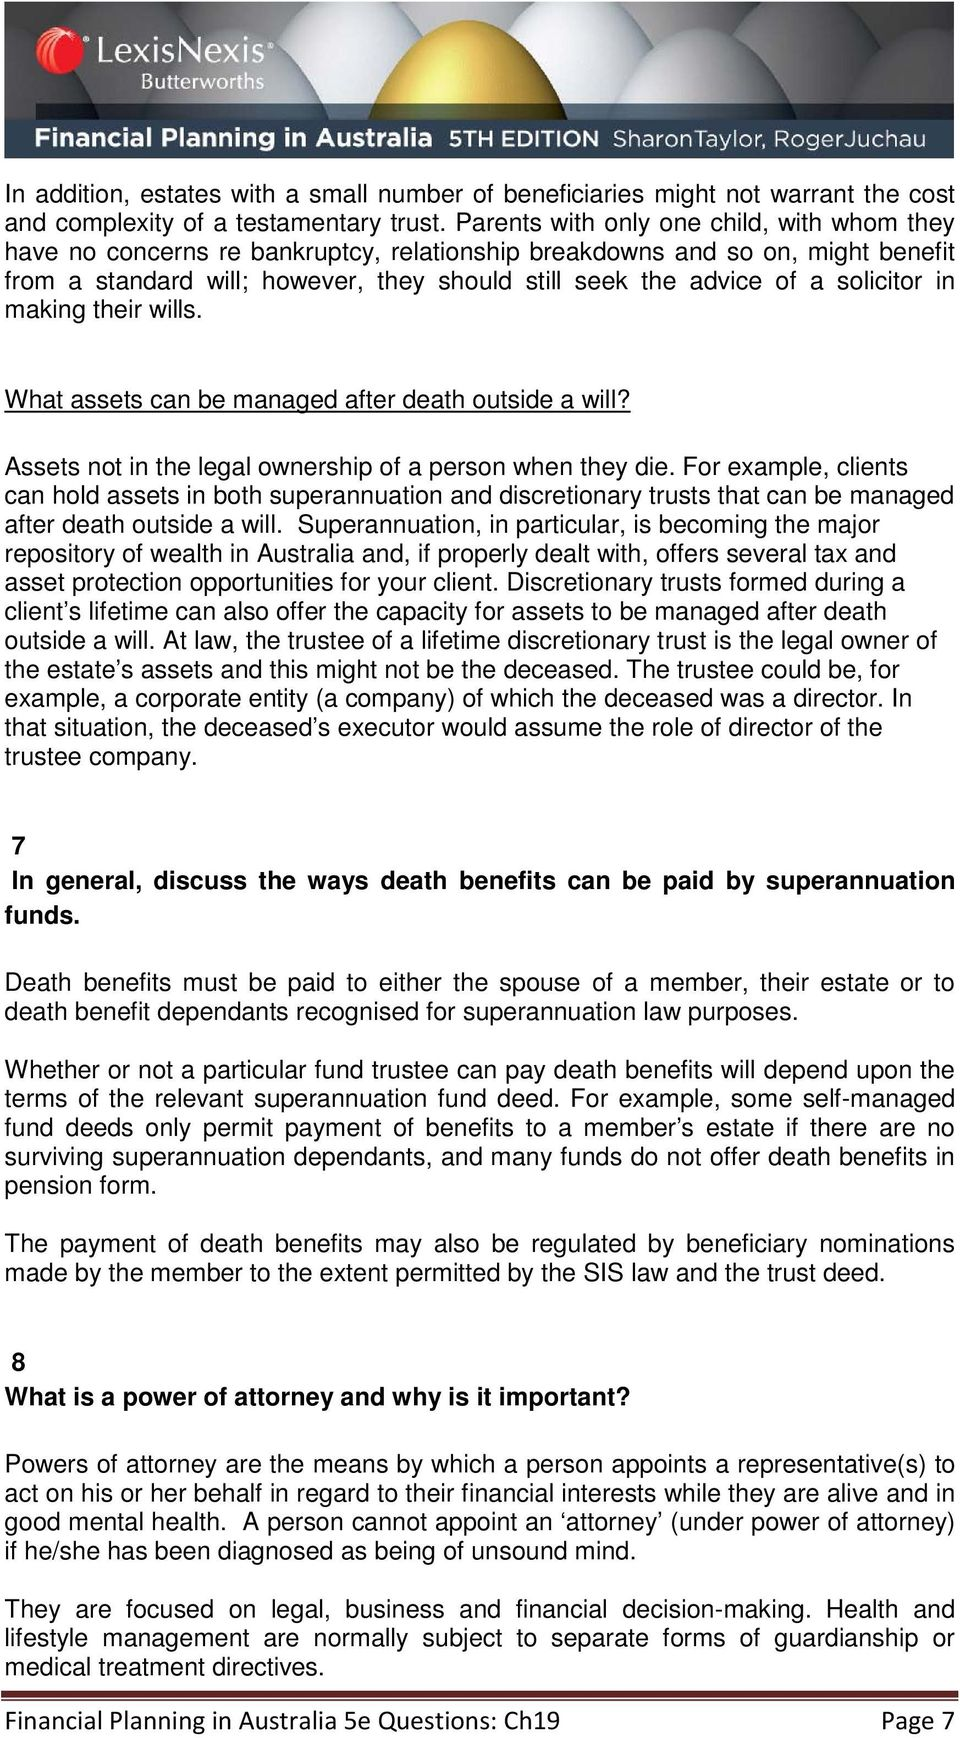 solicitor in making their wills. What assets can be managed after death outside a will? Assets not in the legal ownership of a person when they die.